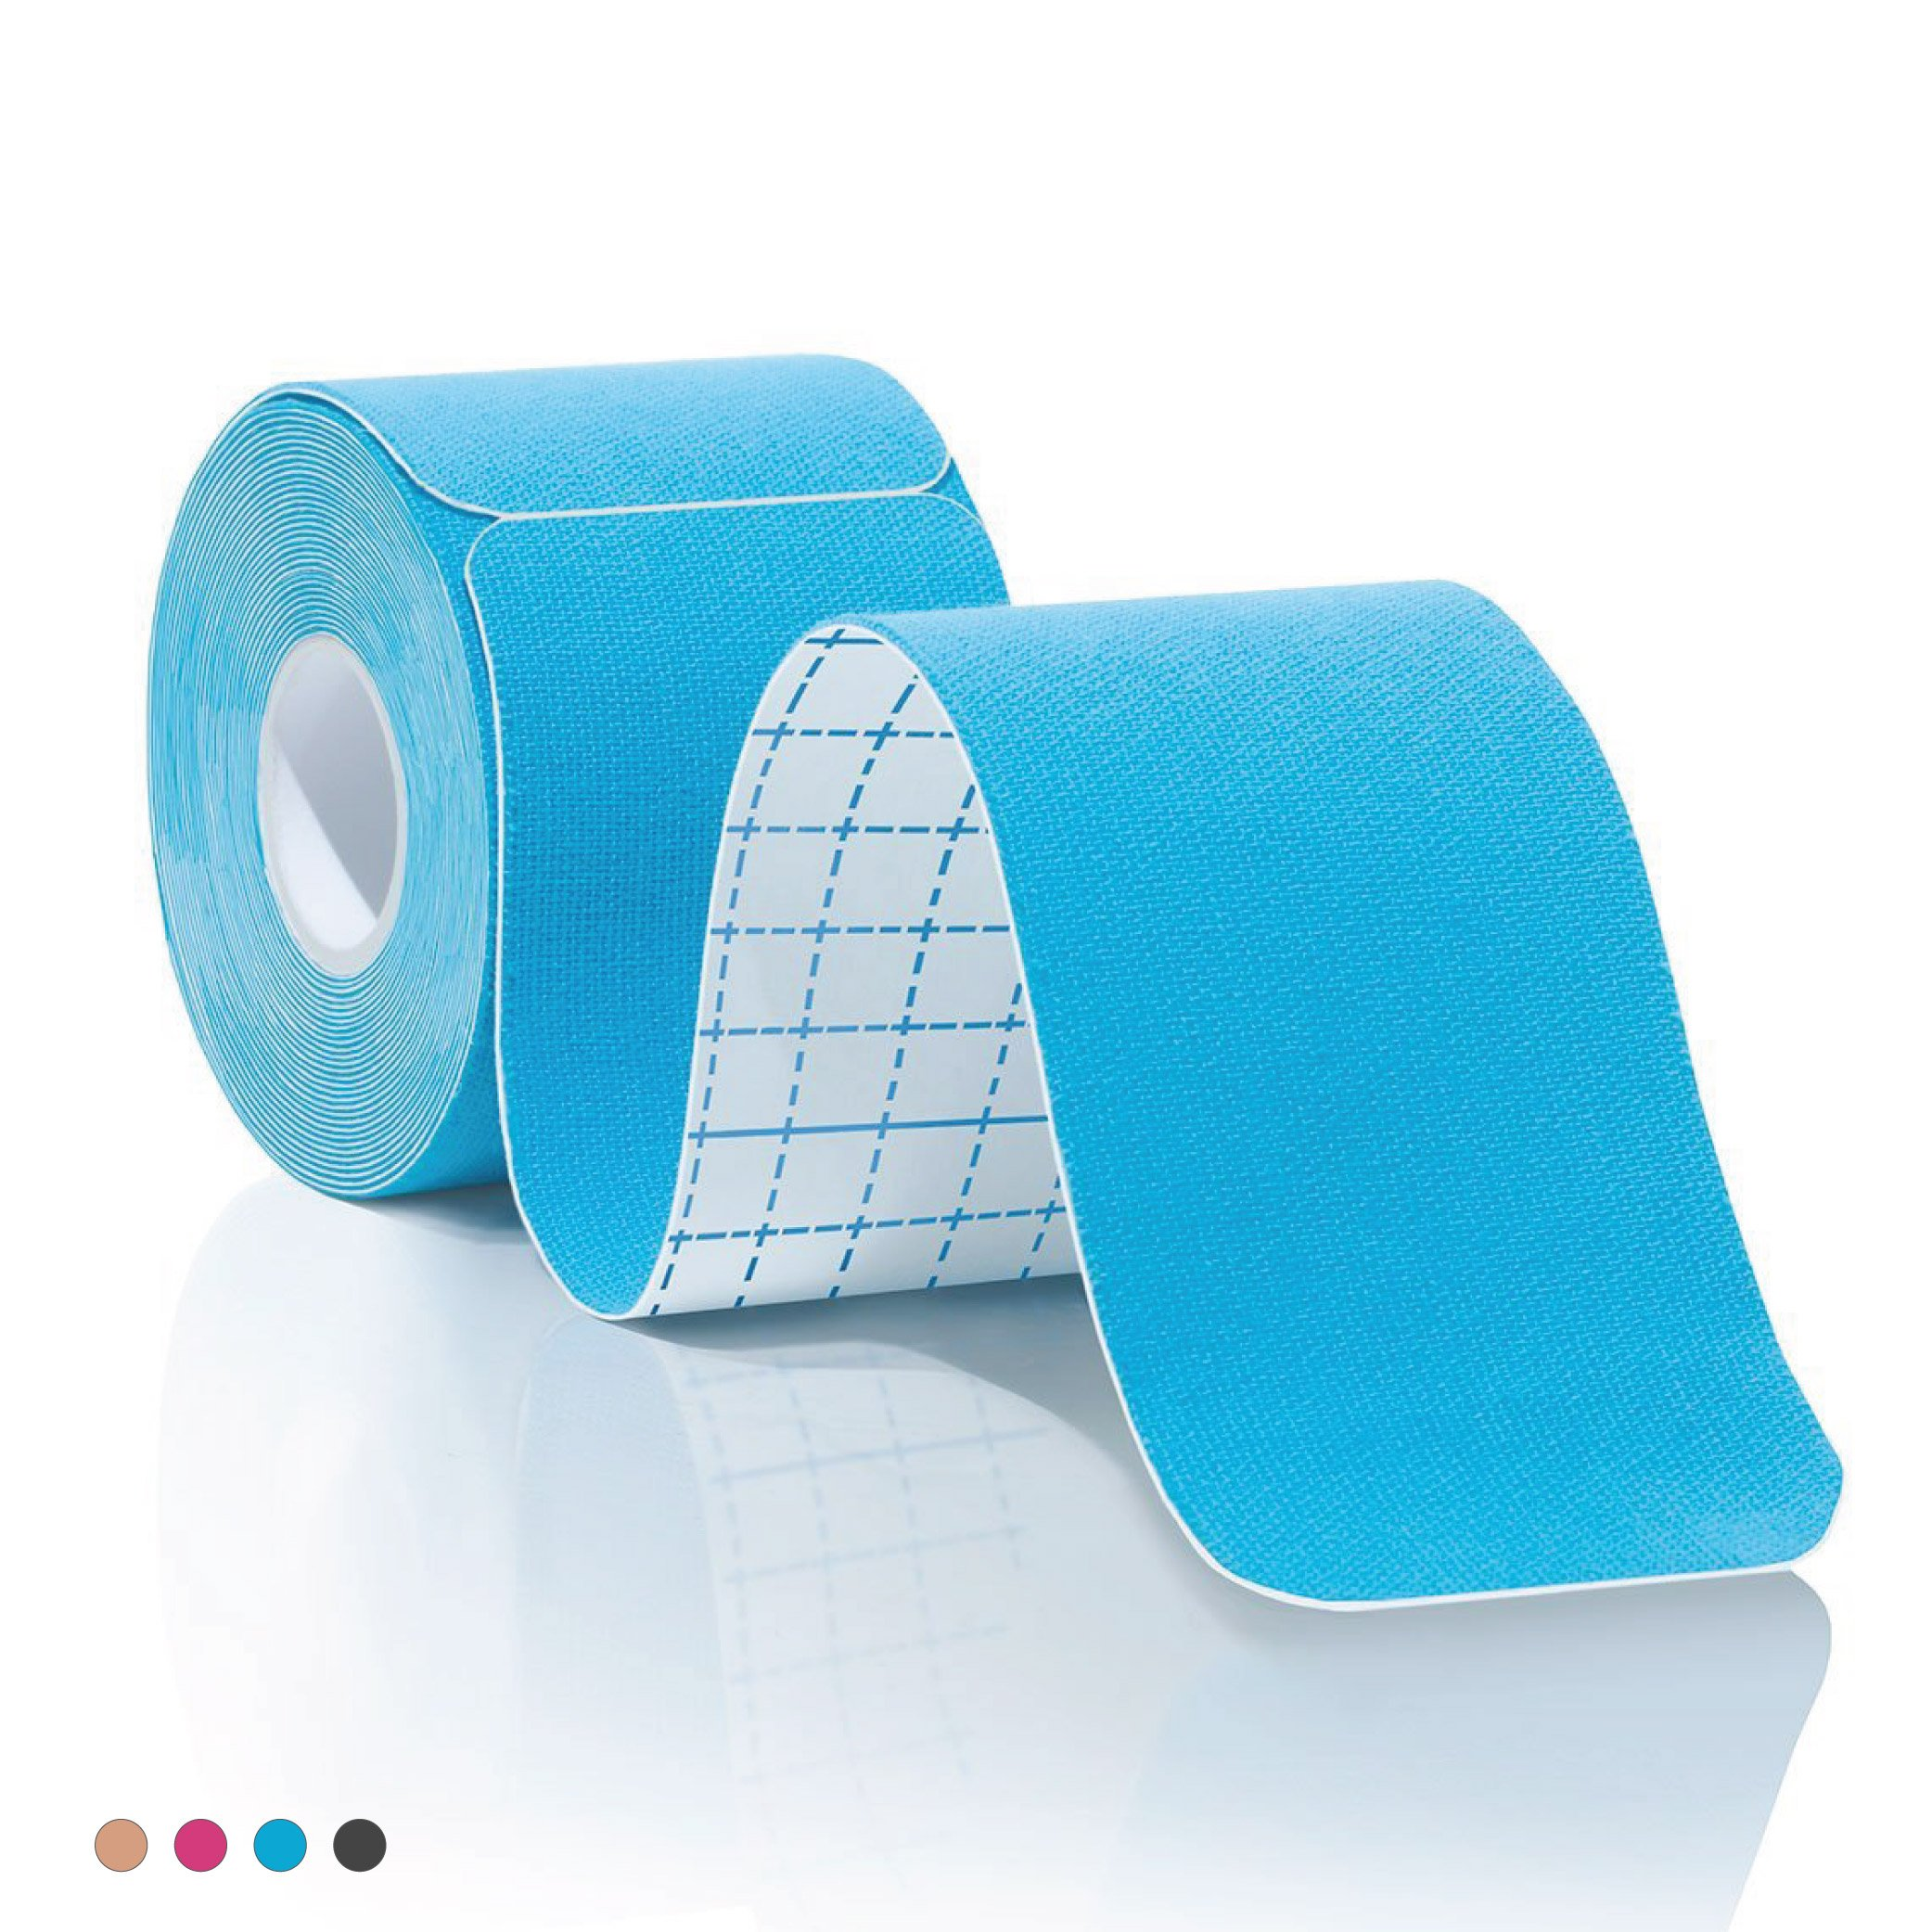 Amazon.com: Kinesiology Tape Pro Athletic Sports. Knee, Ankle, Muscle, Kinetic Sport Dynamic, Physical Therapy. Strong-Rock Breathable h2o Resist Cotton.